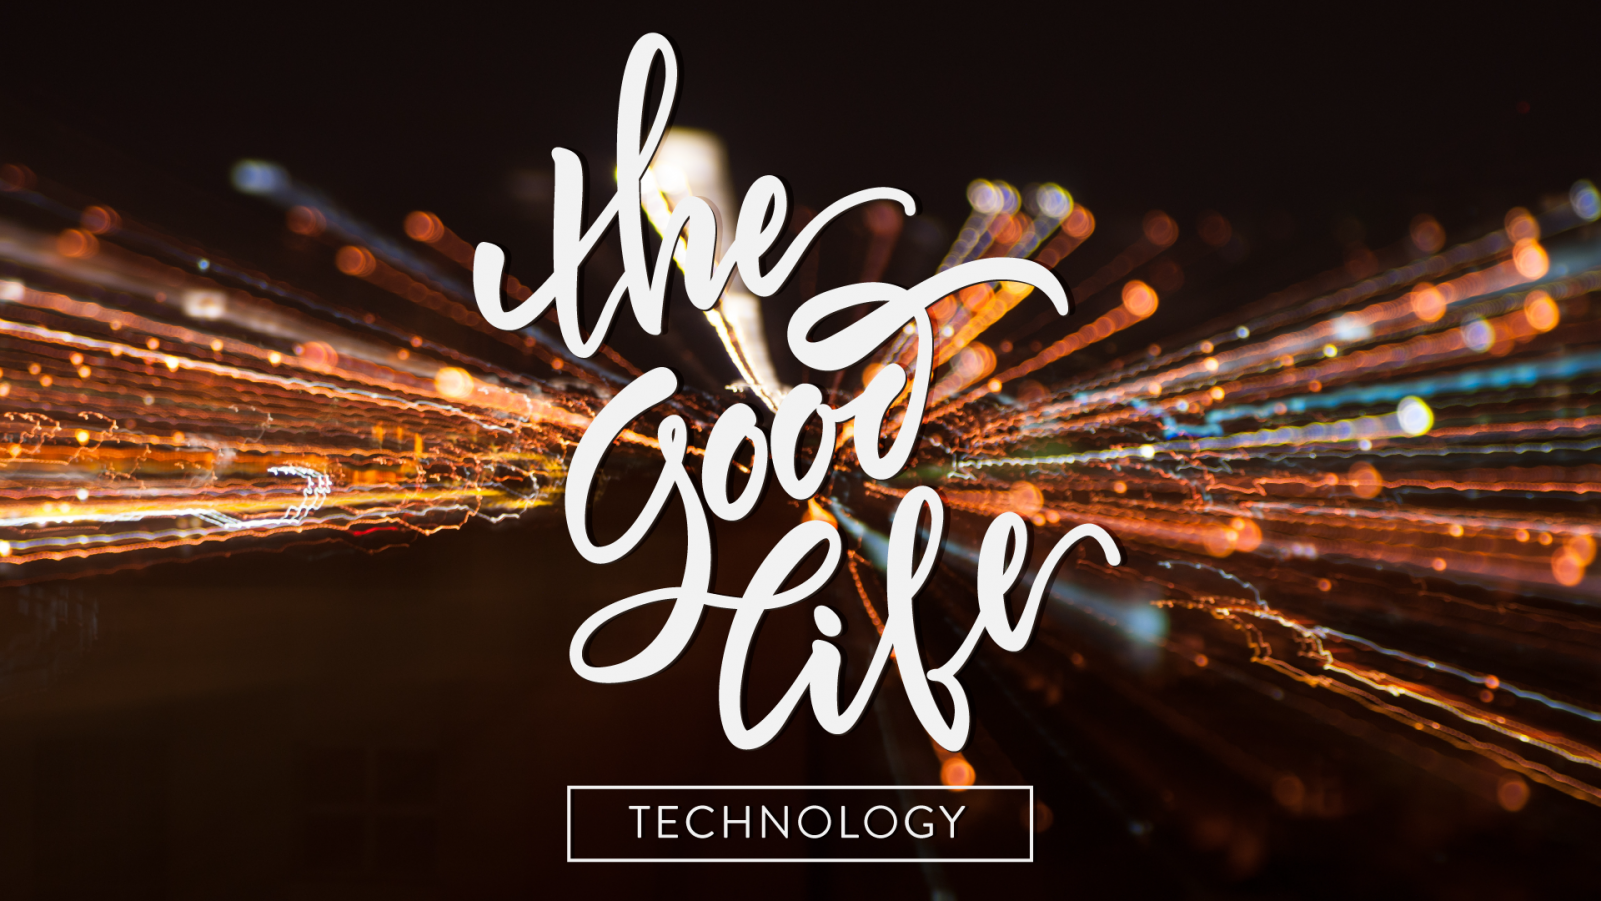 The Good Life: Technology